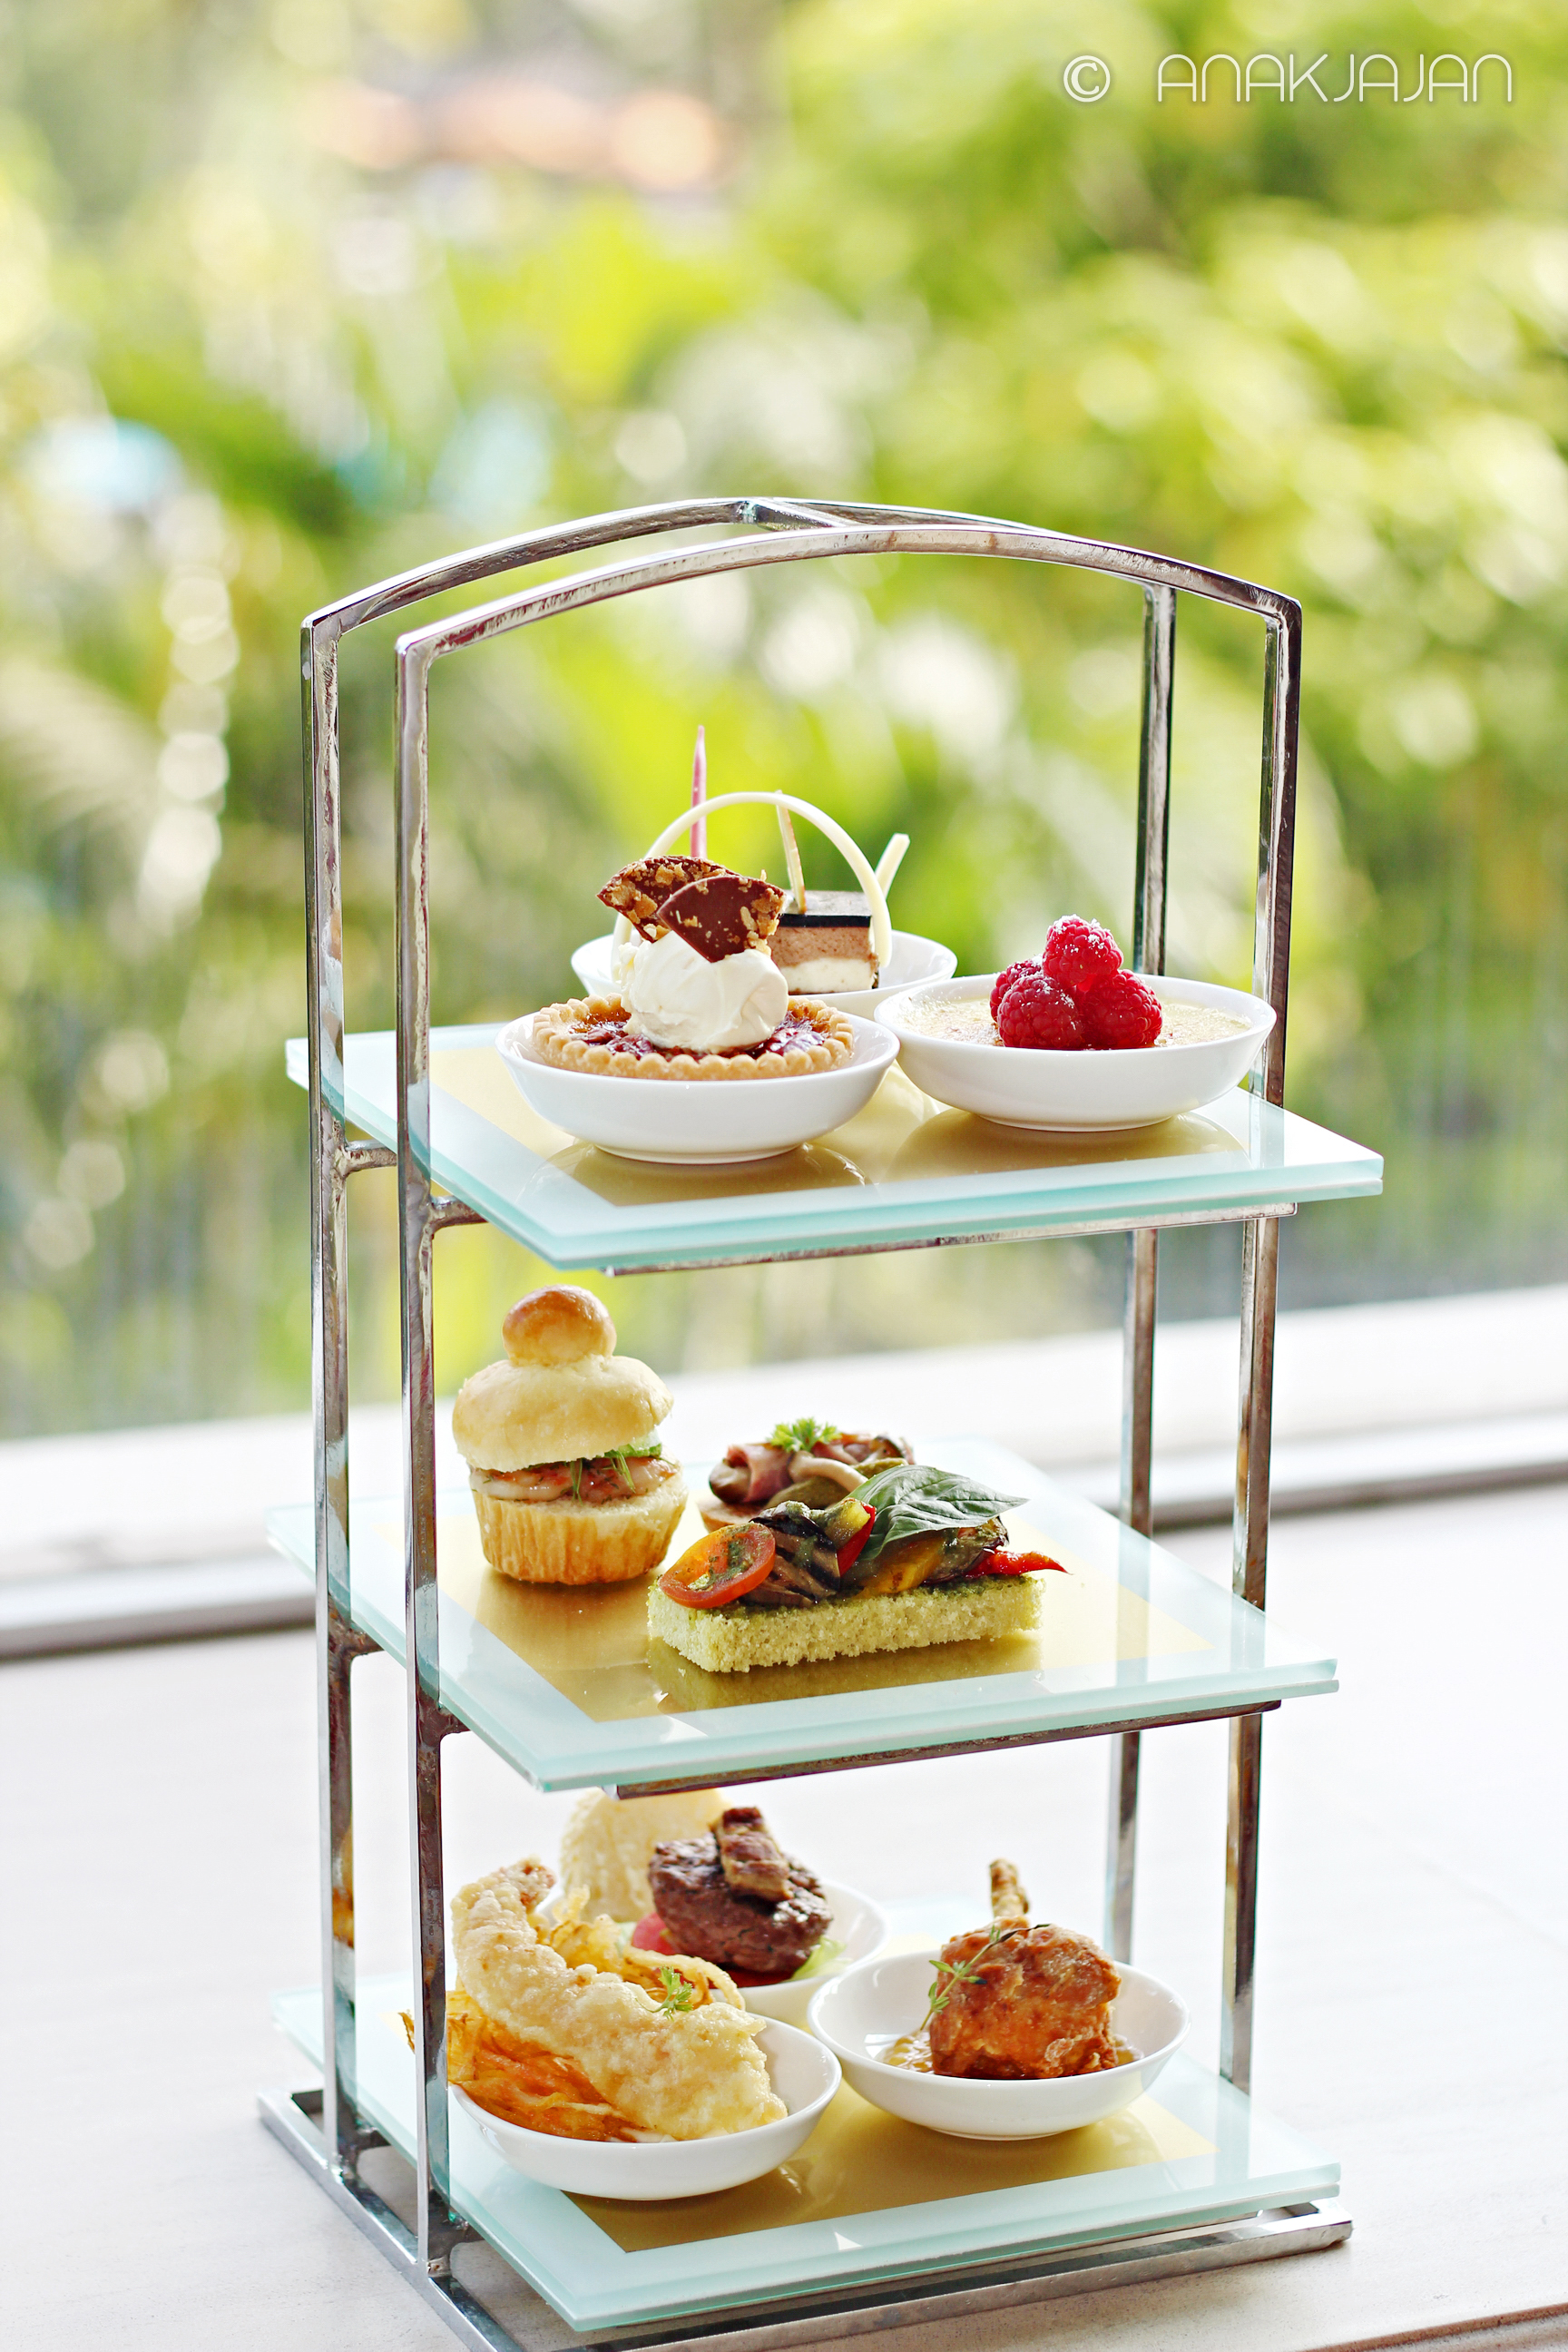 Afternoon High Tea at Shangri-La Hotel | ANAKJAJAN.COM